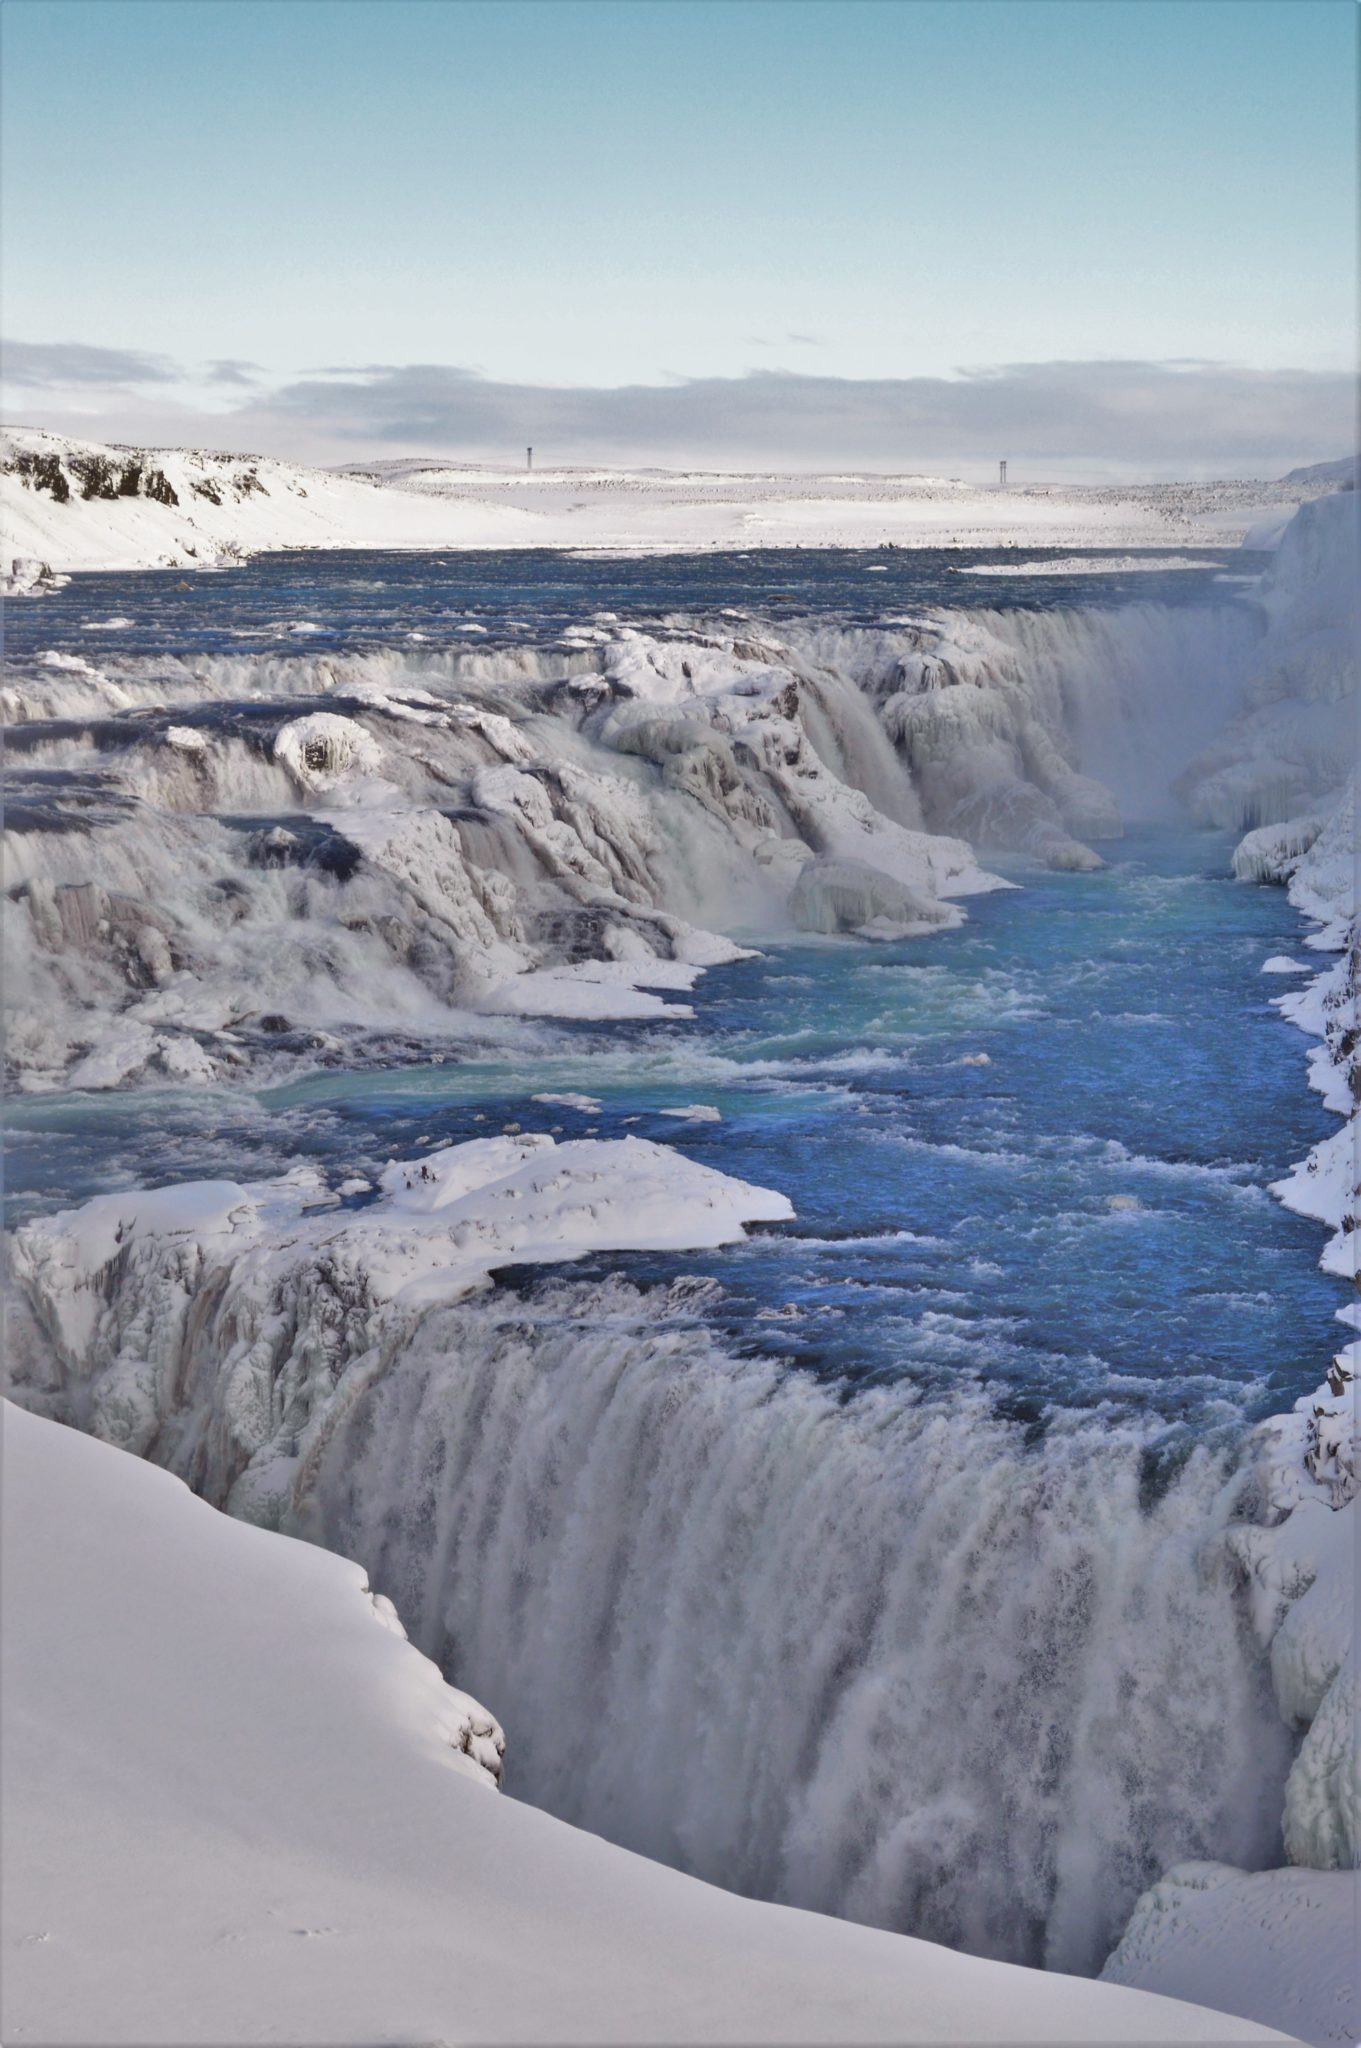 Gulfoss waterall, part of the Golden Circle in Iceland